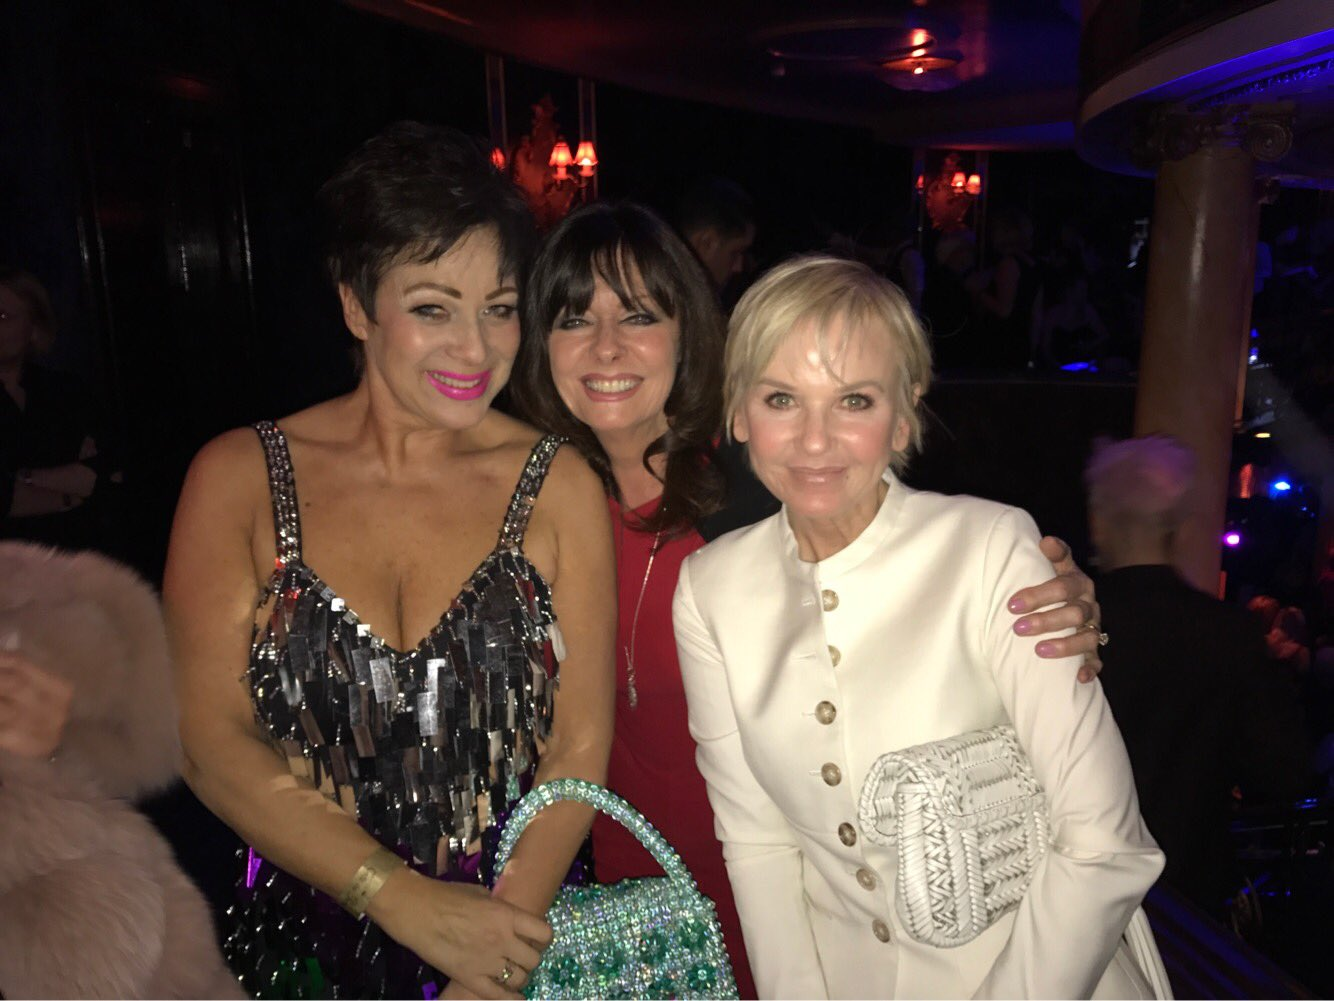 RT @vickimichelle: Congrats on your @DIVAmagazine #DIVA250 Award @RealDeniseWelch  What a night @thelisamaxwell https://t.co/kzX6DtkDGi